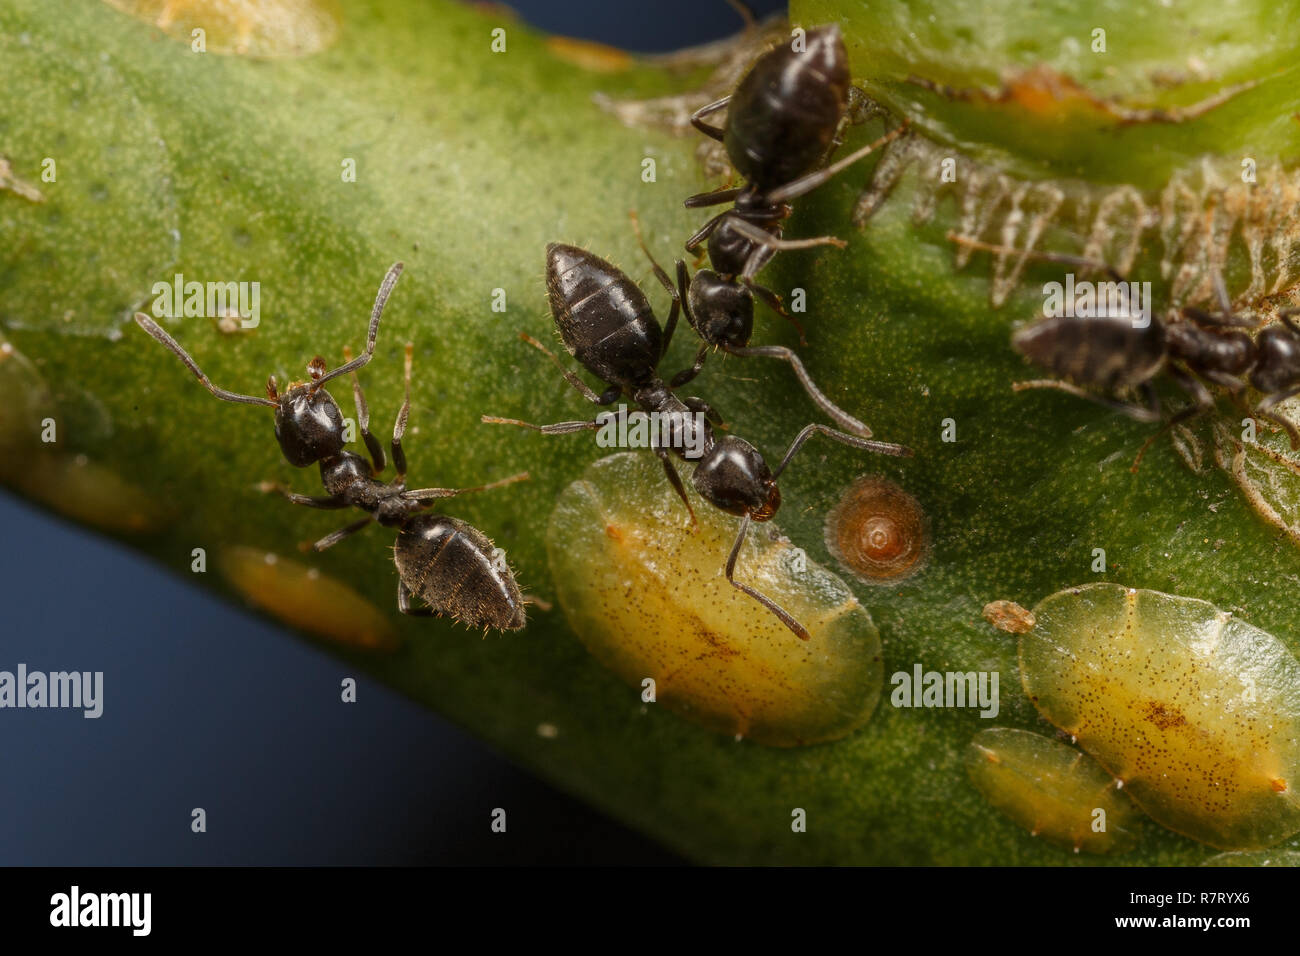 Technomyrmex ants tending scale insects on an apple tree, Albany, Western Australia - Stock Image